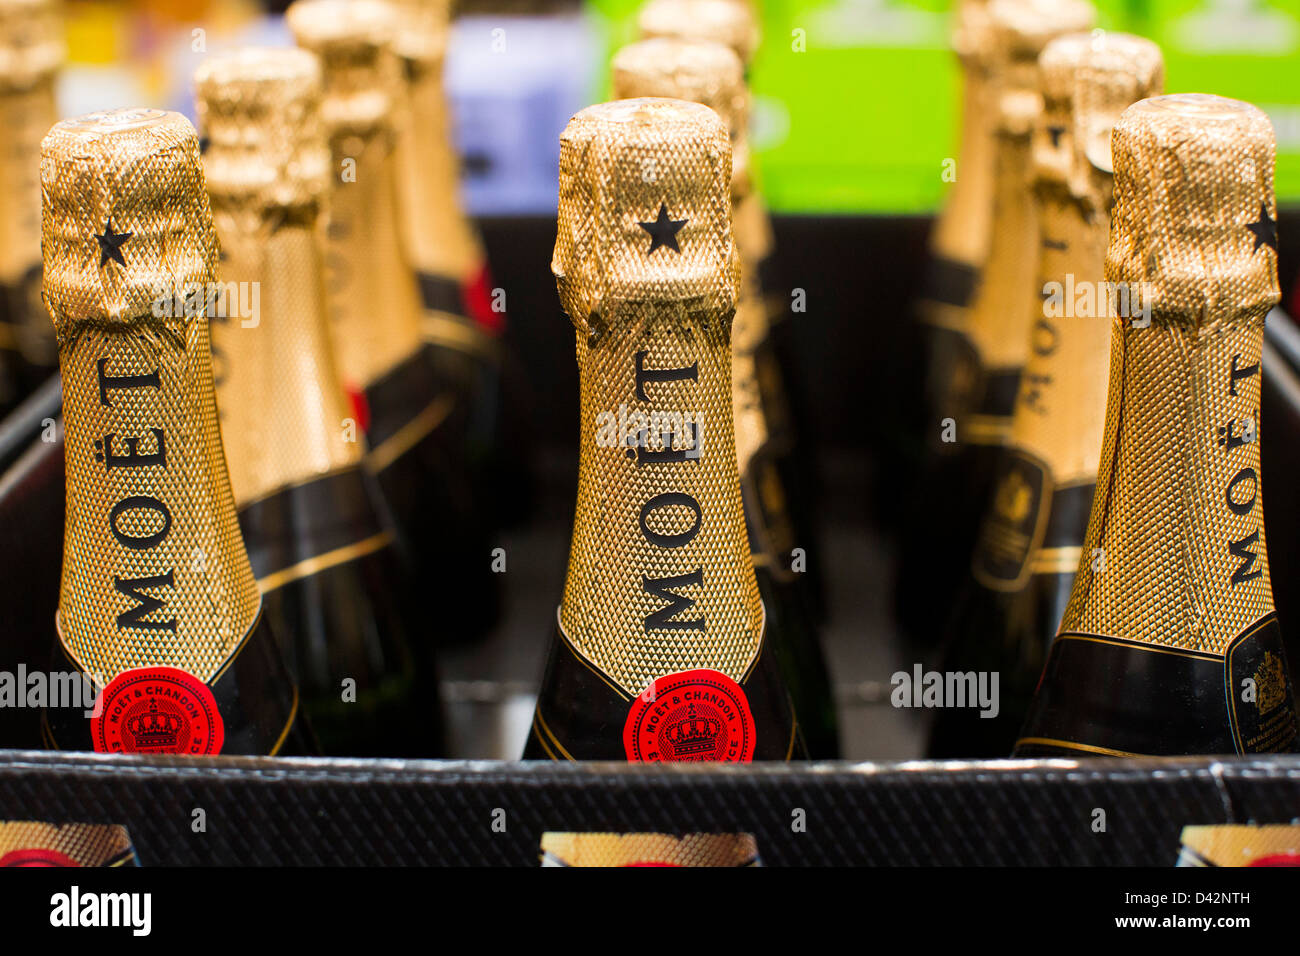 Moet champagne on display at a costco wholesale warehouse club stock moet champagne on display at a costco wholesale warehouse club thecheapjerseys Images